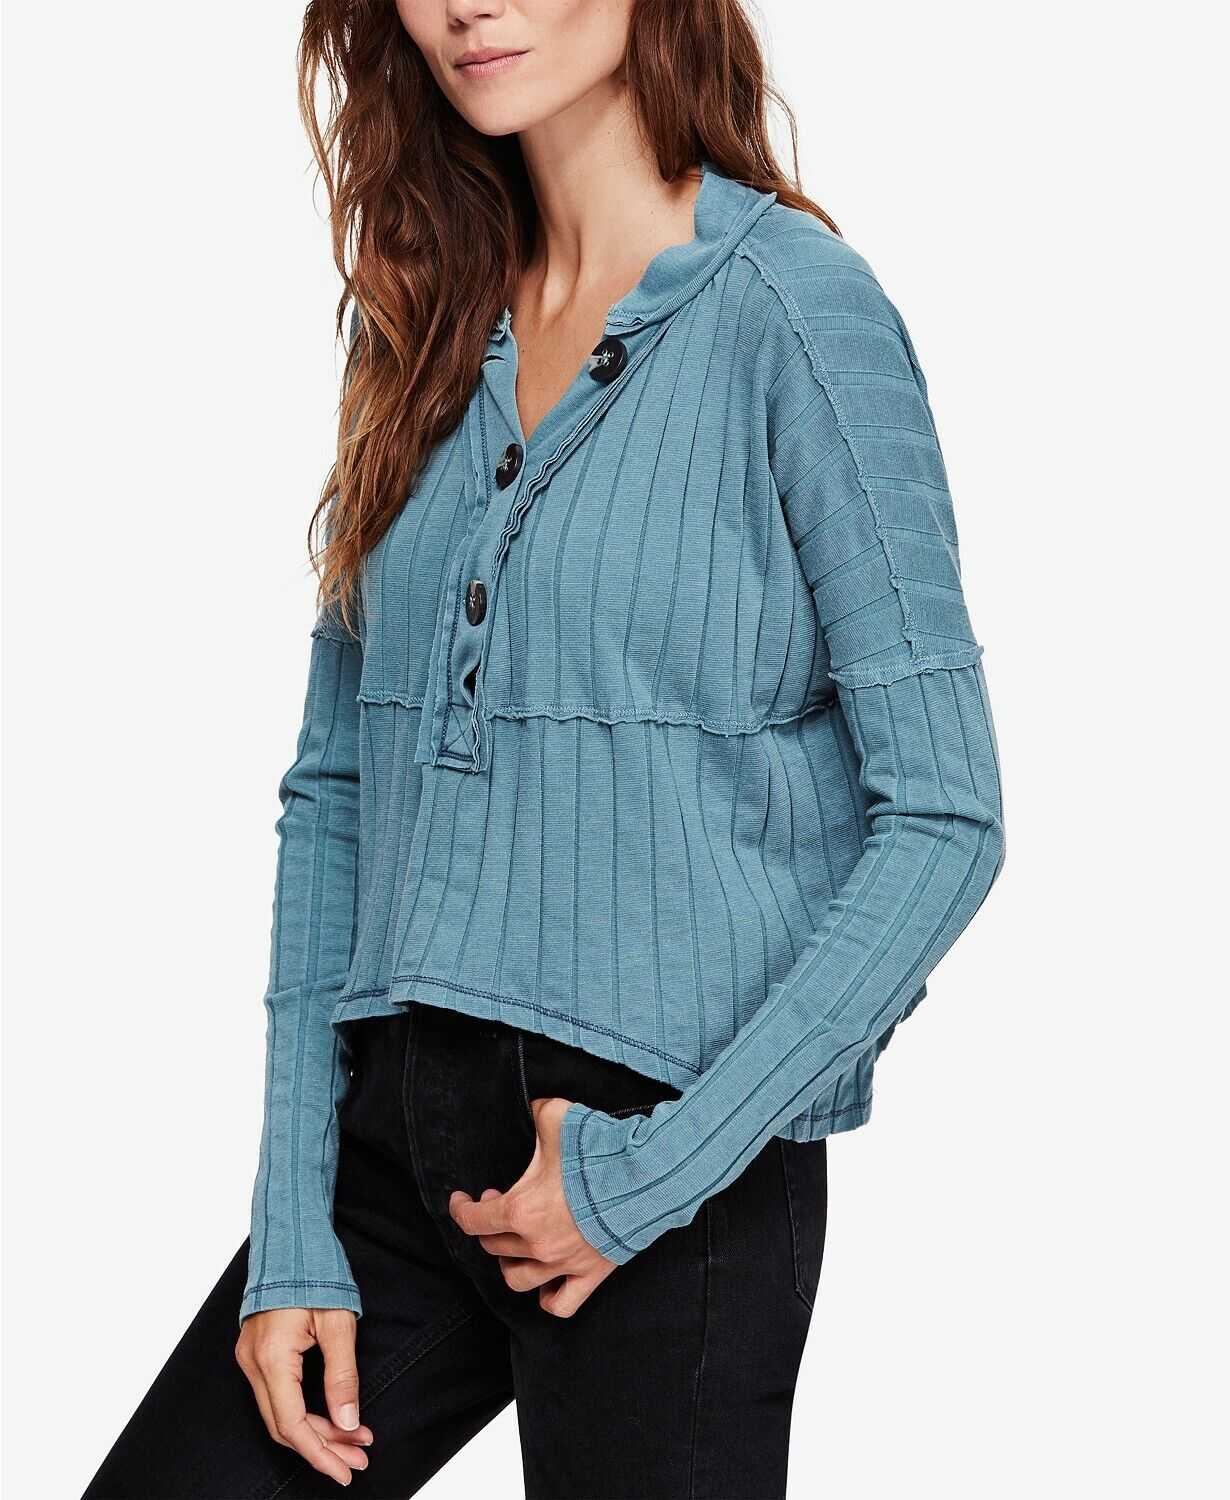 Free People In The Mix Long Sleeve Ribbed Henley Top Ocean bluee Teal S